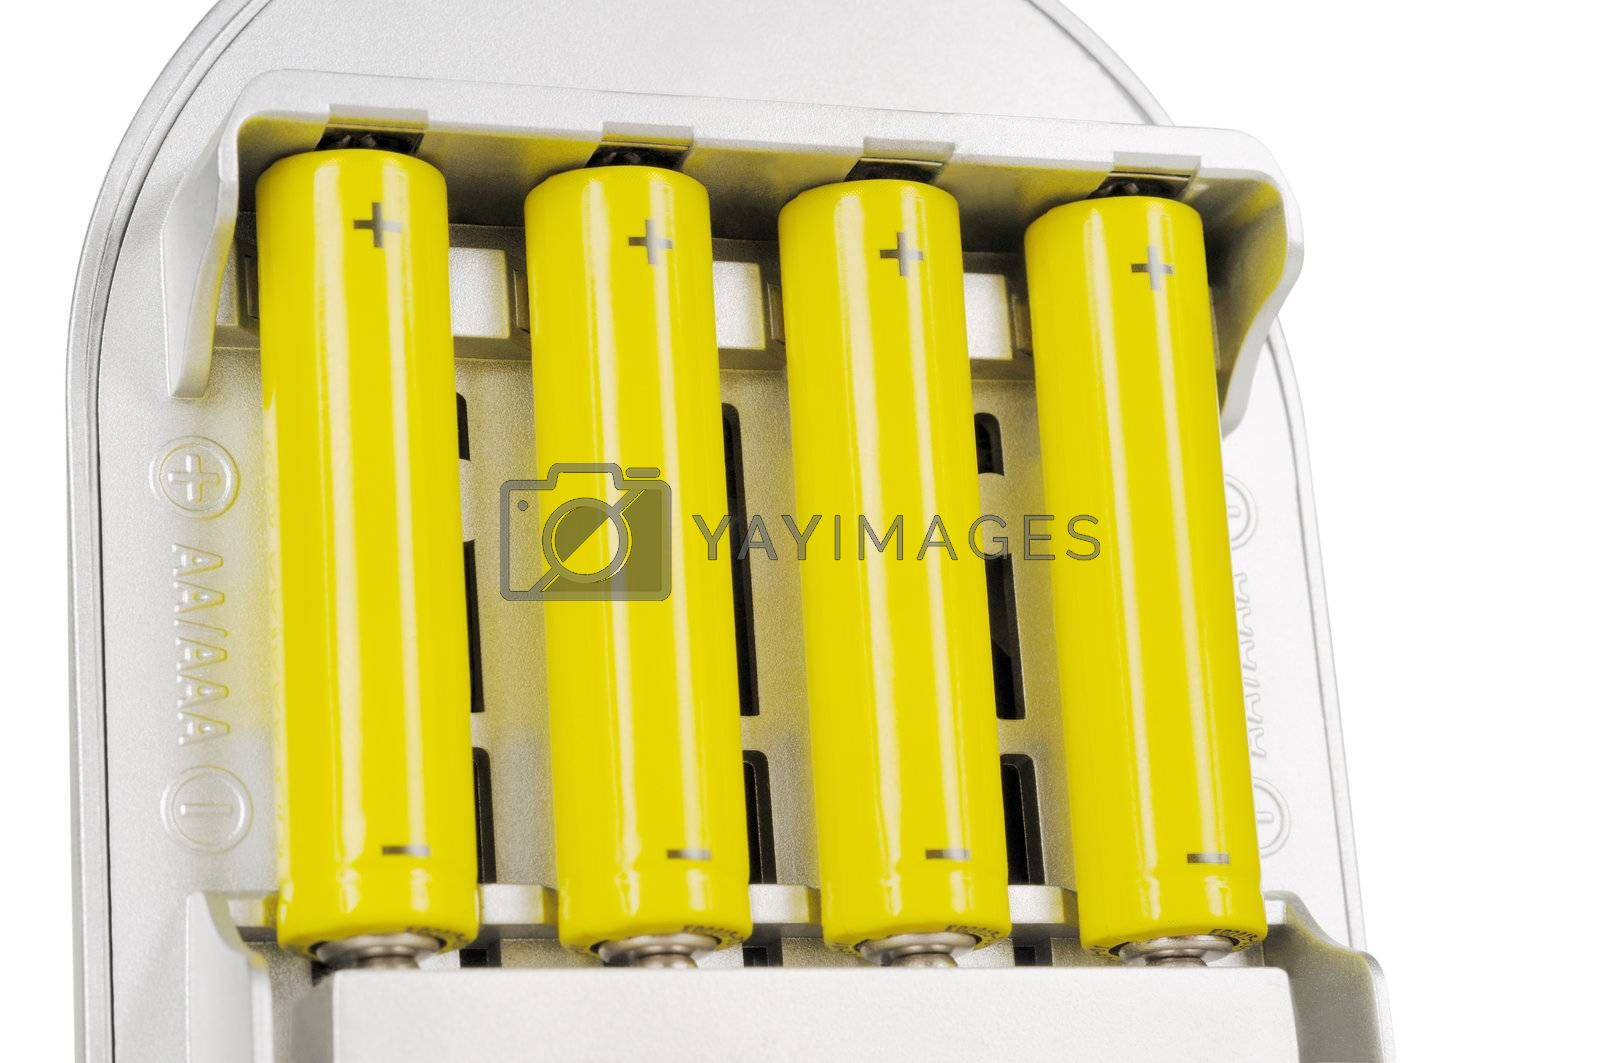 Four batteries in the charger. Isolated on white.